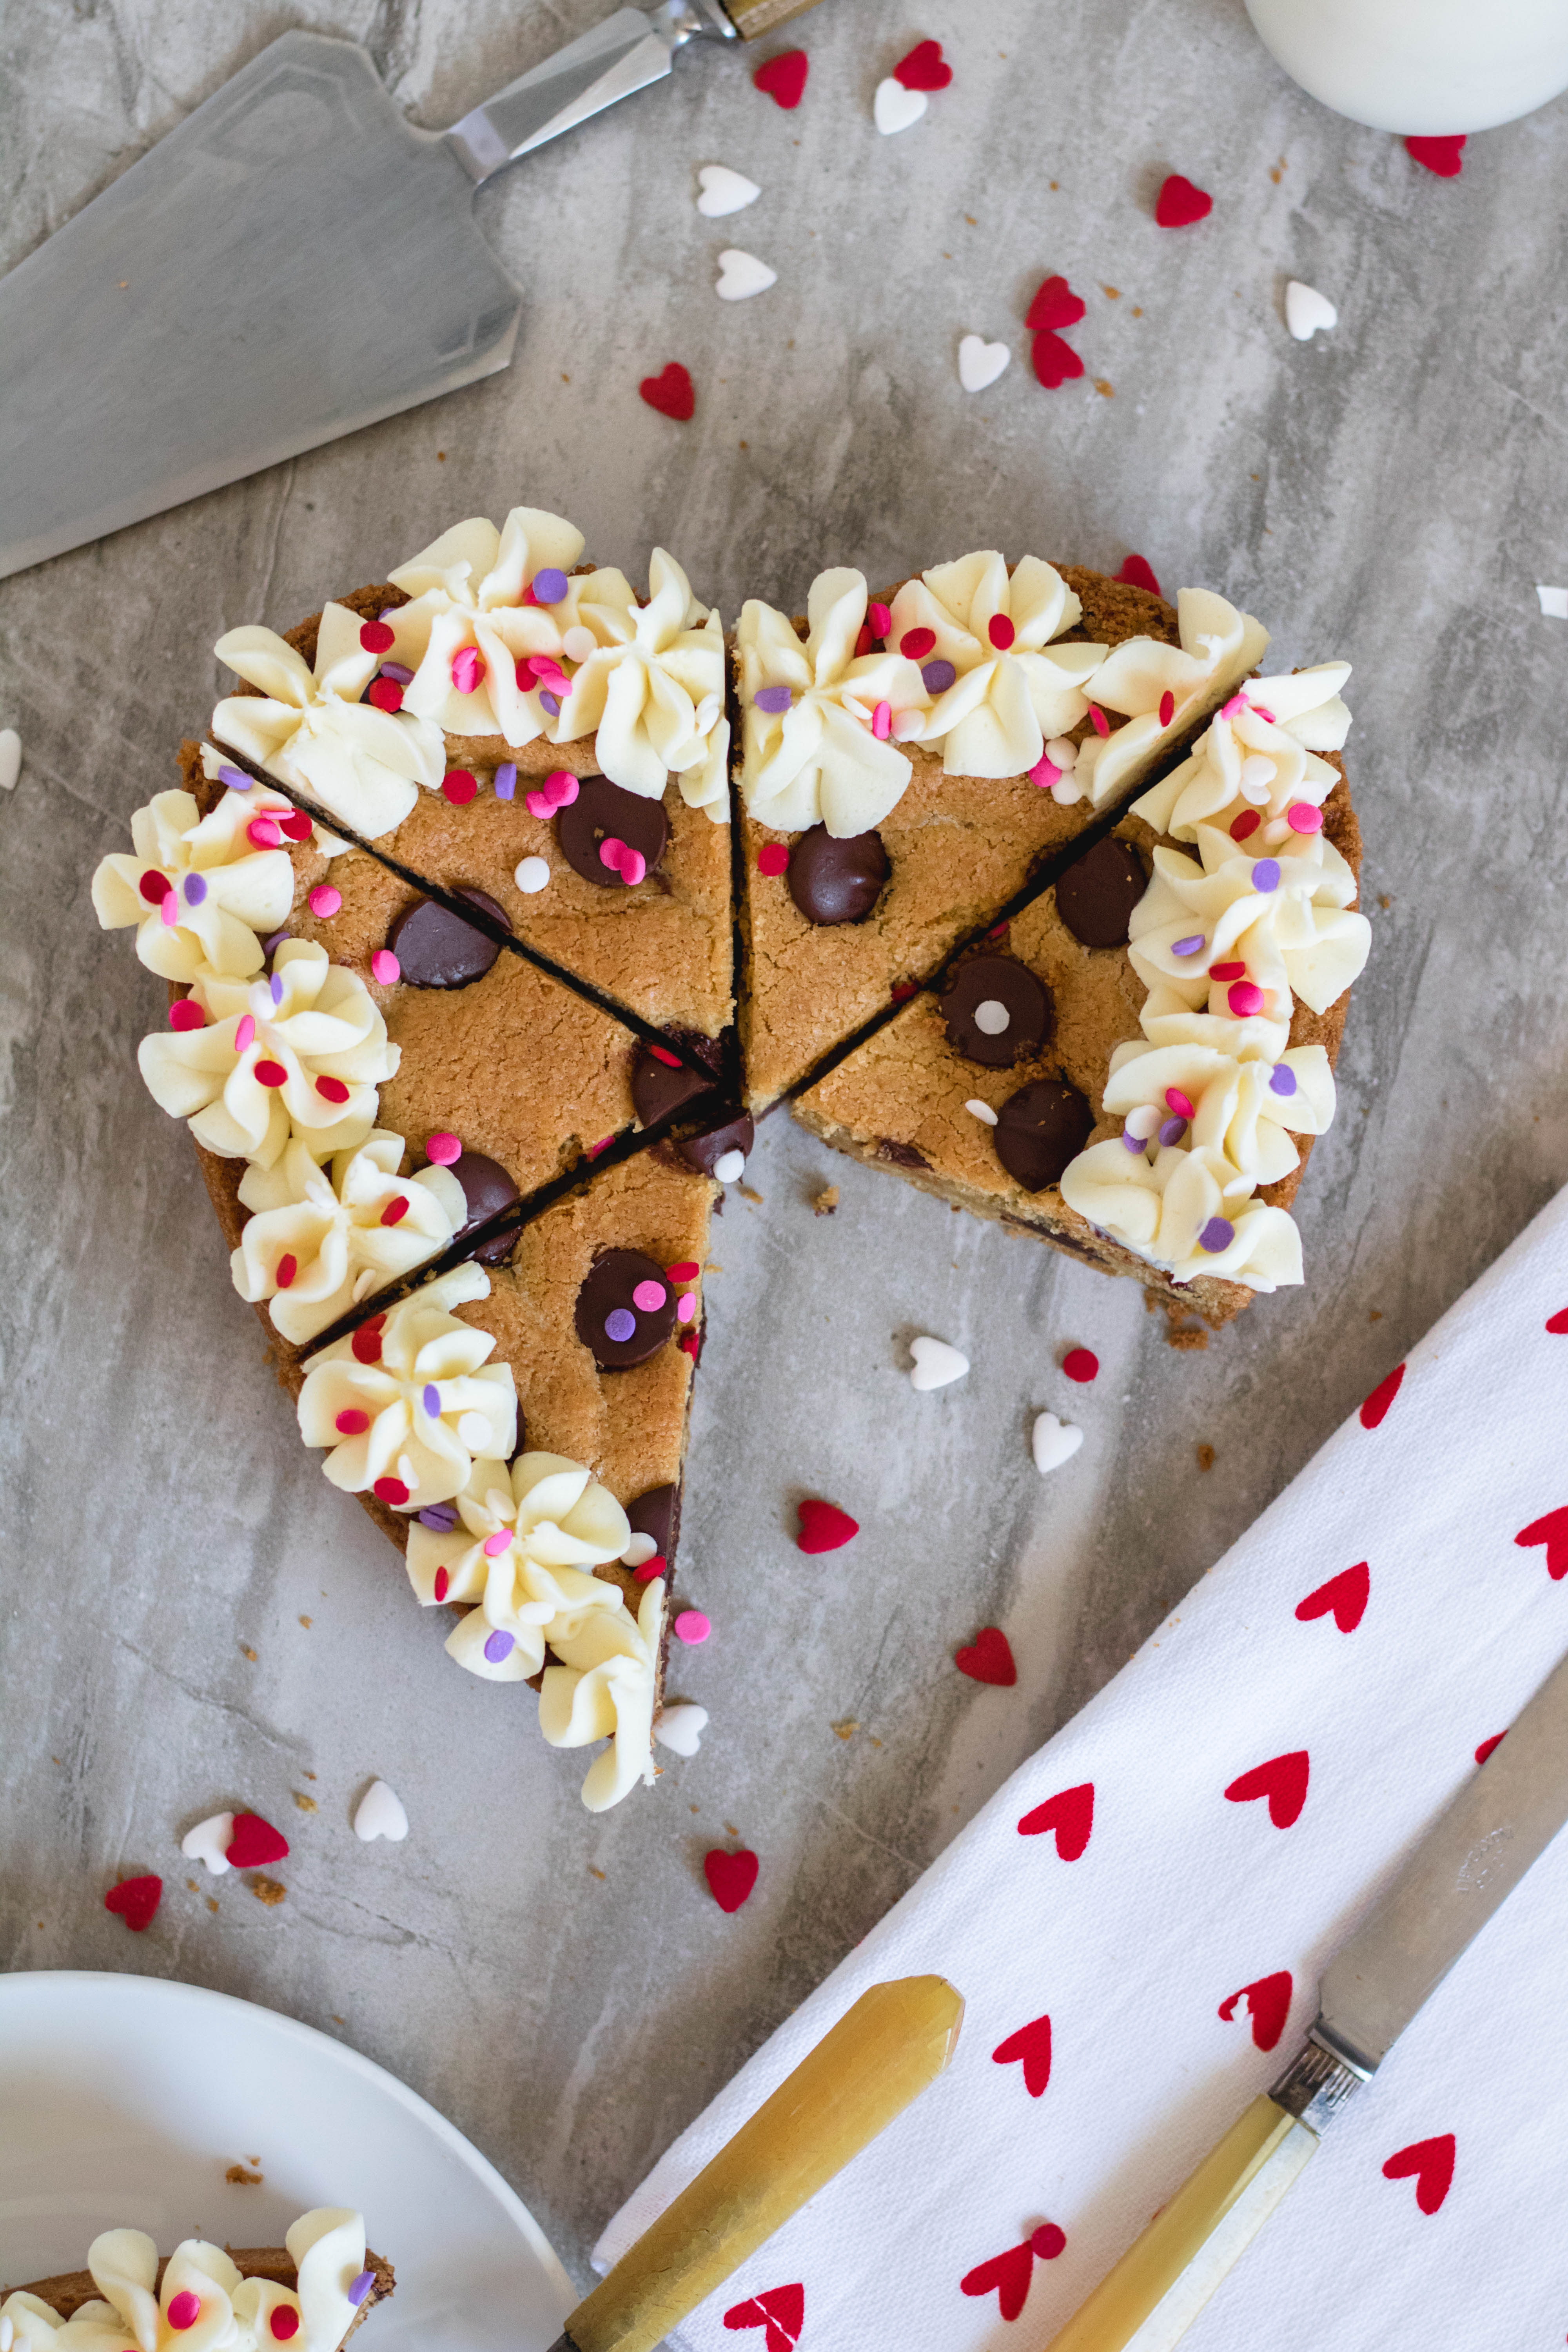 Heart Valentine's Day Cookie Cake for two